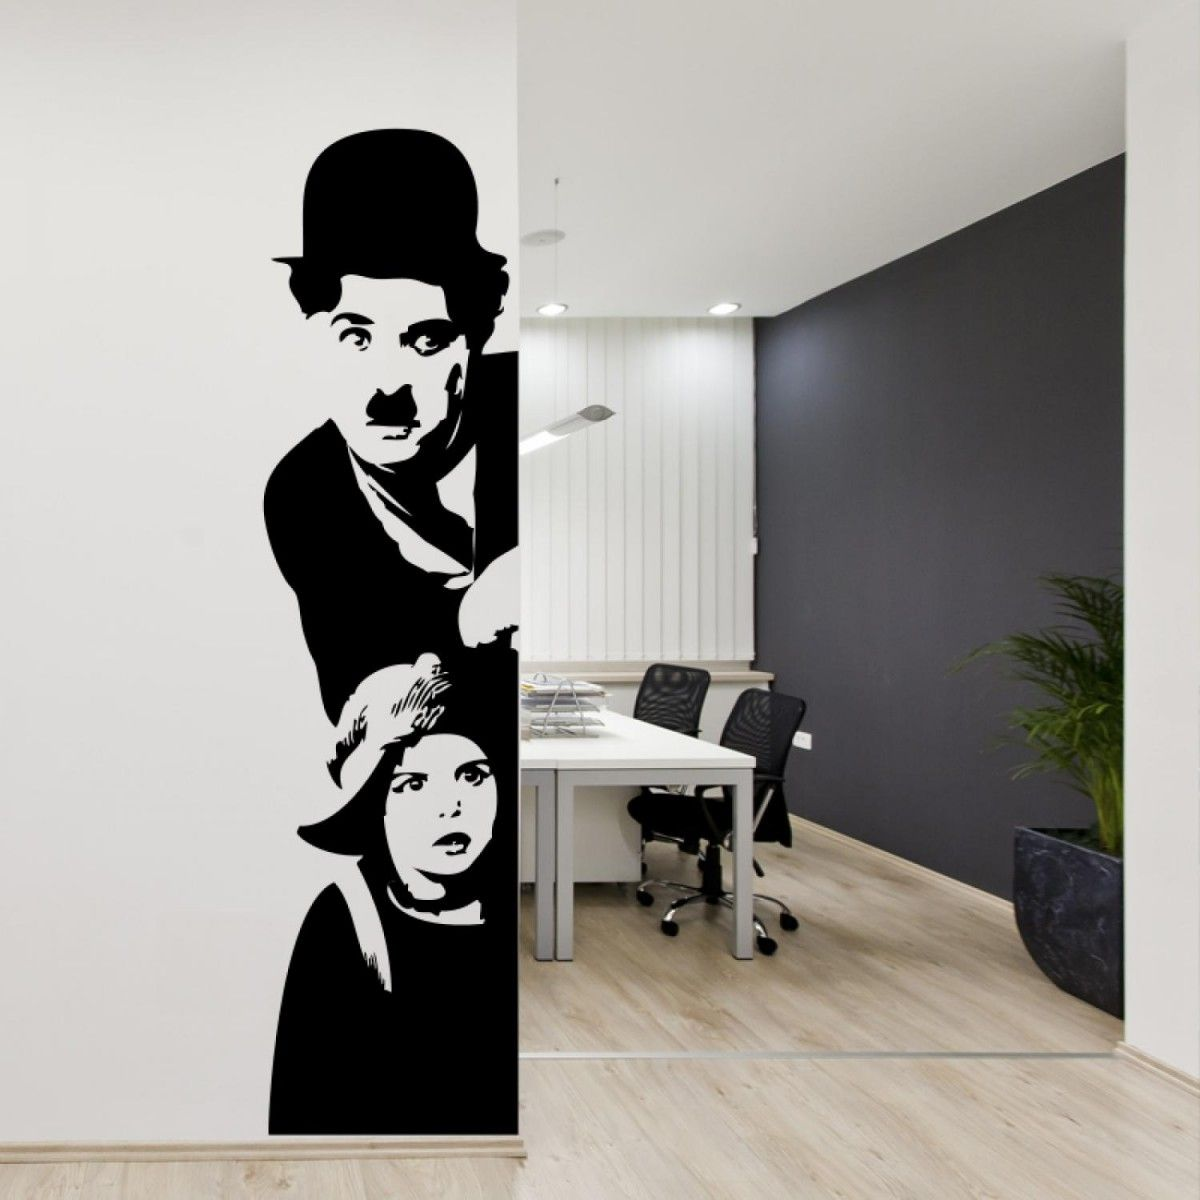 stunning vinyl wall sticker with charlie chaplin give a touch of stunning vinyl wall sticker with charlie chaplin give a touch of creativity to your home